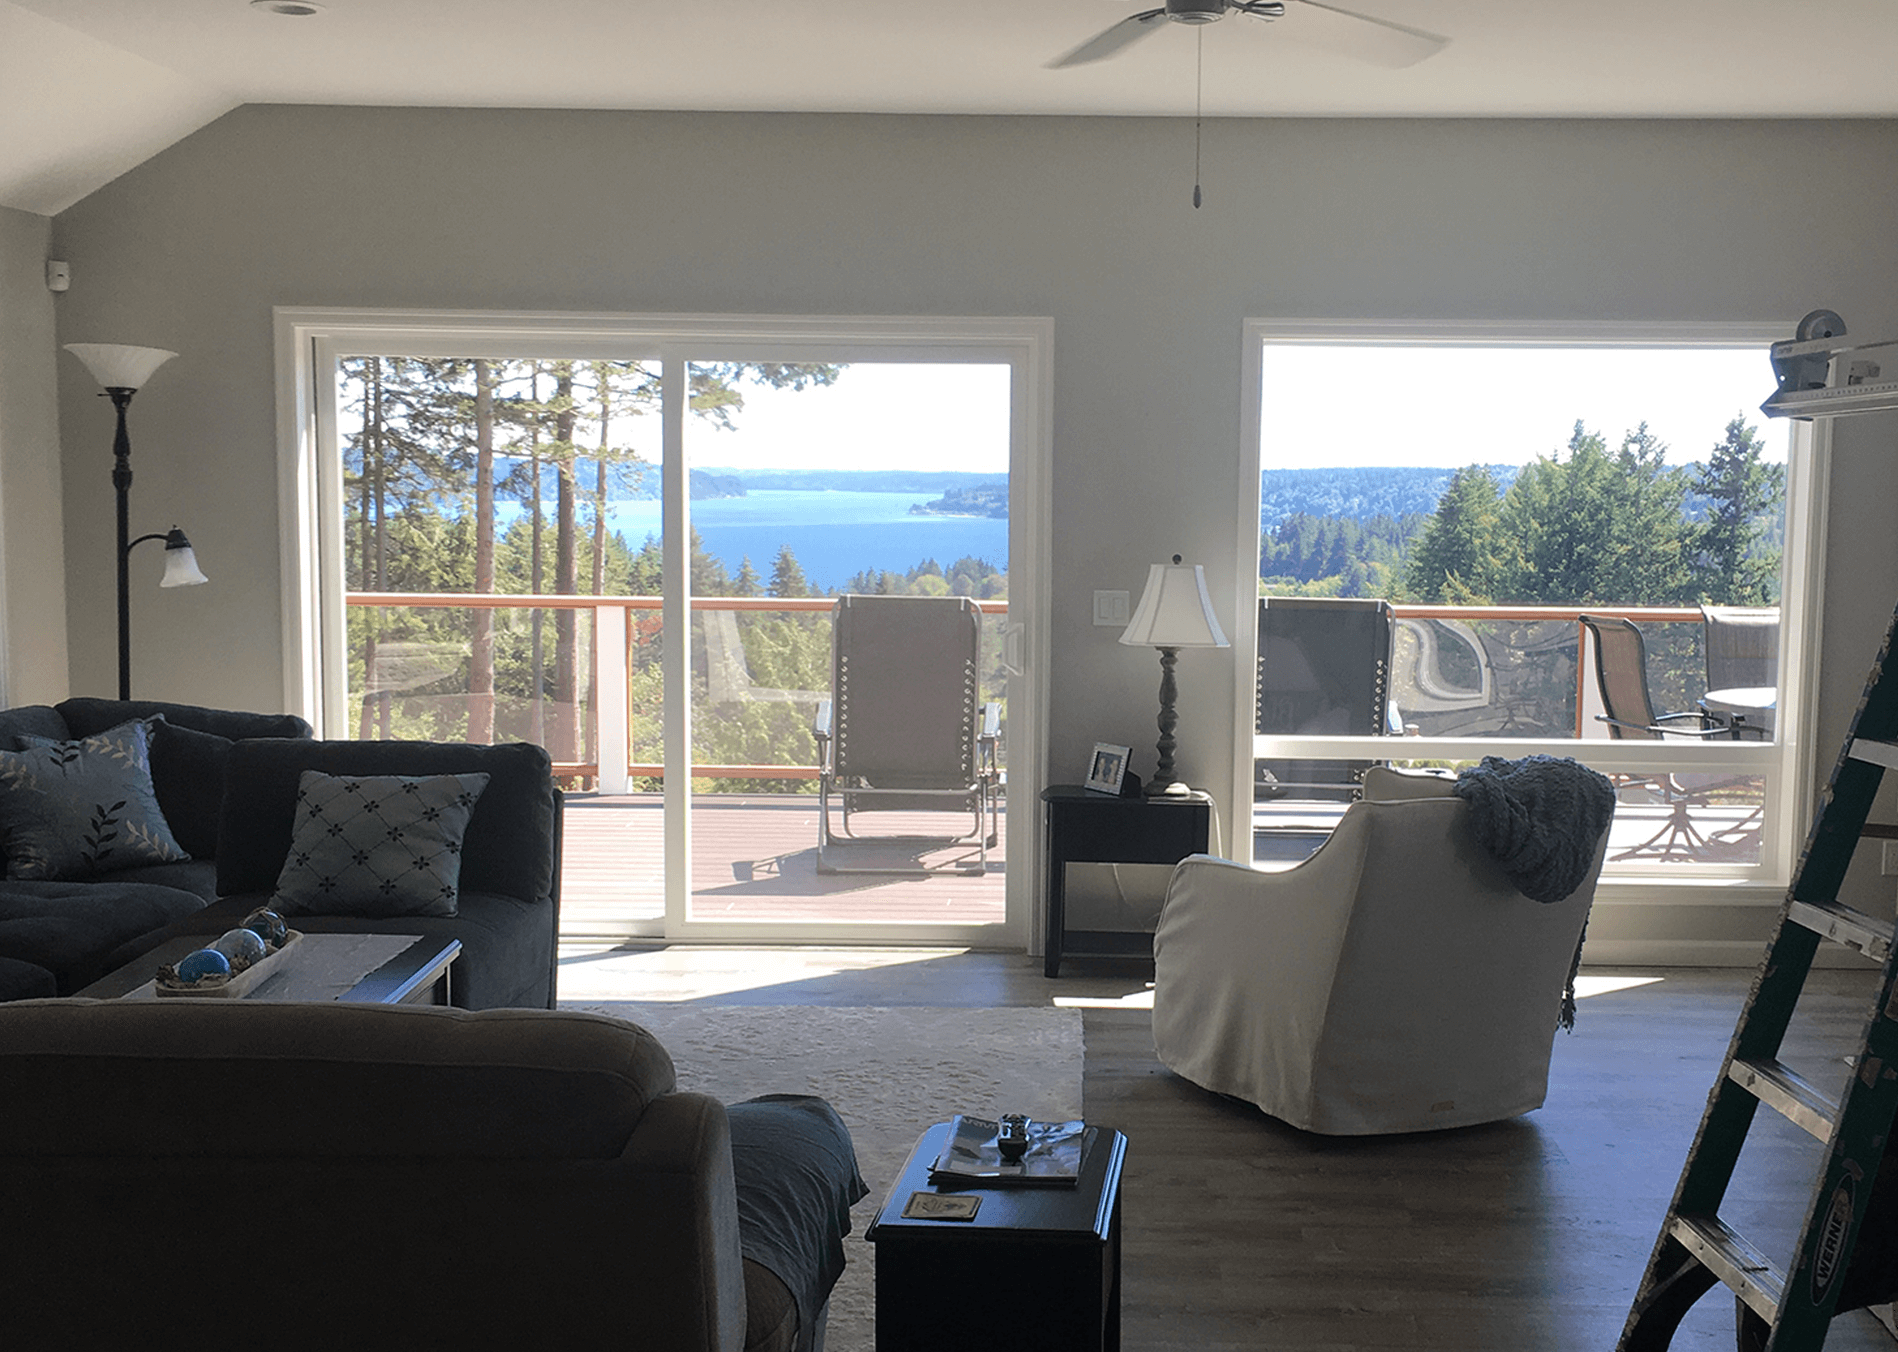 Residential Window Tinting Image Gallery